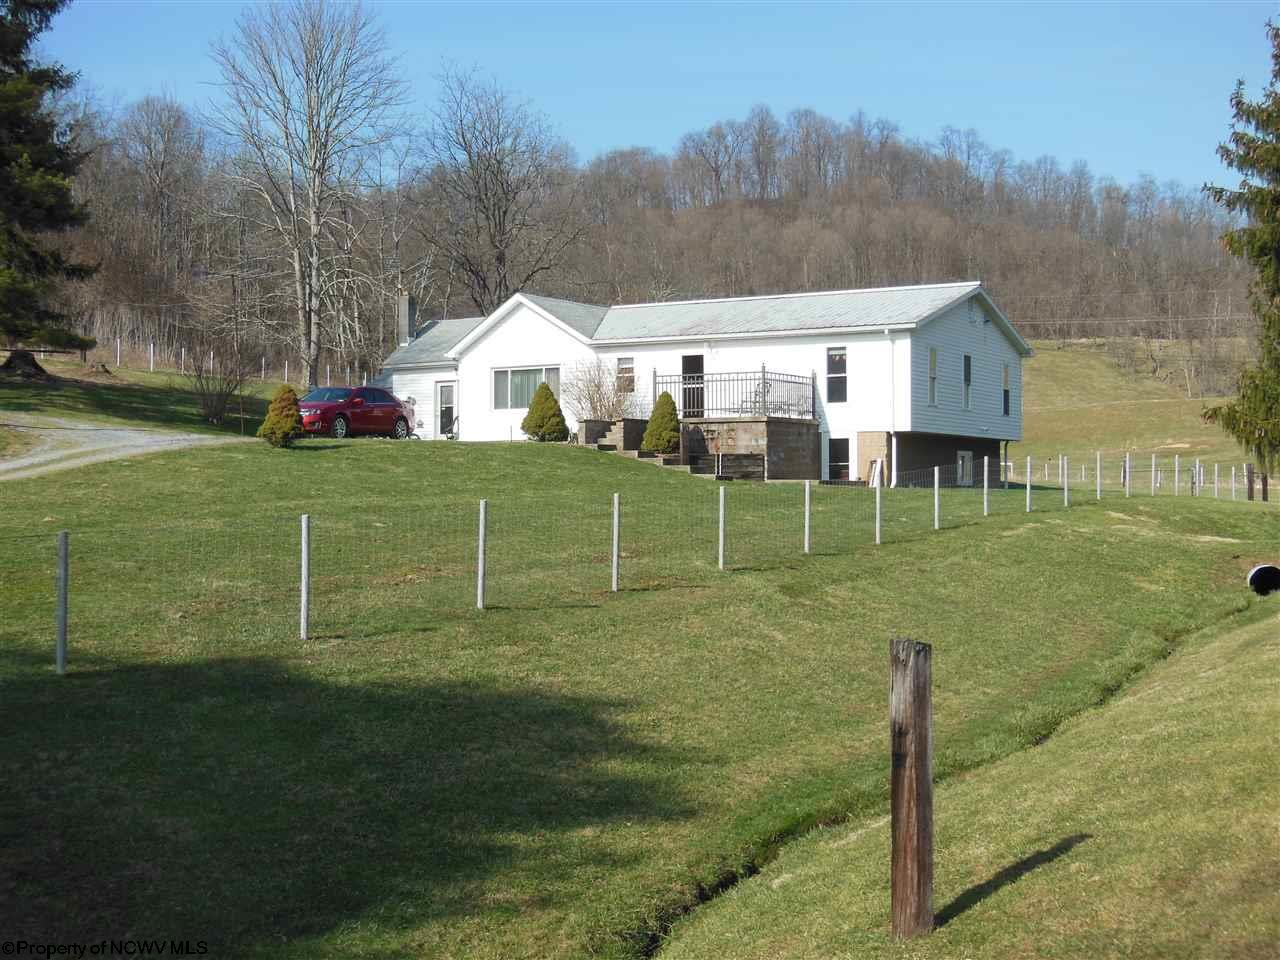 273 MICHAEL HILL ROAD, WORTHINGTON, WV 26591  Photo 1